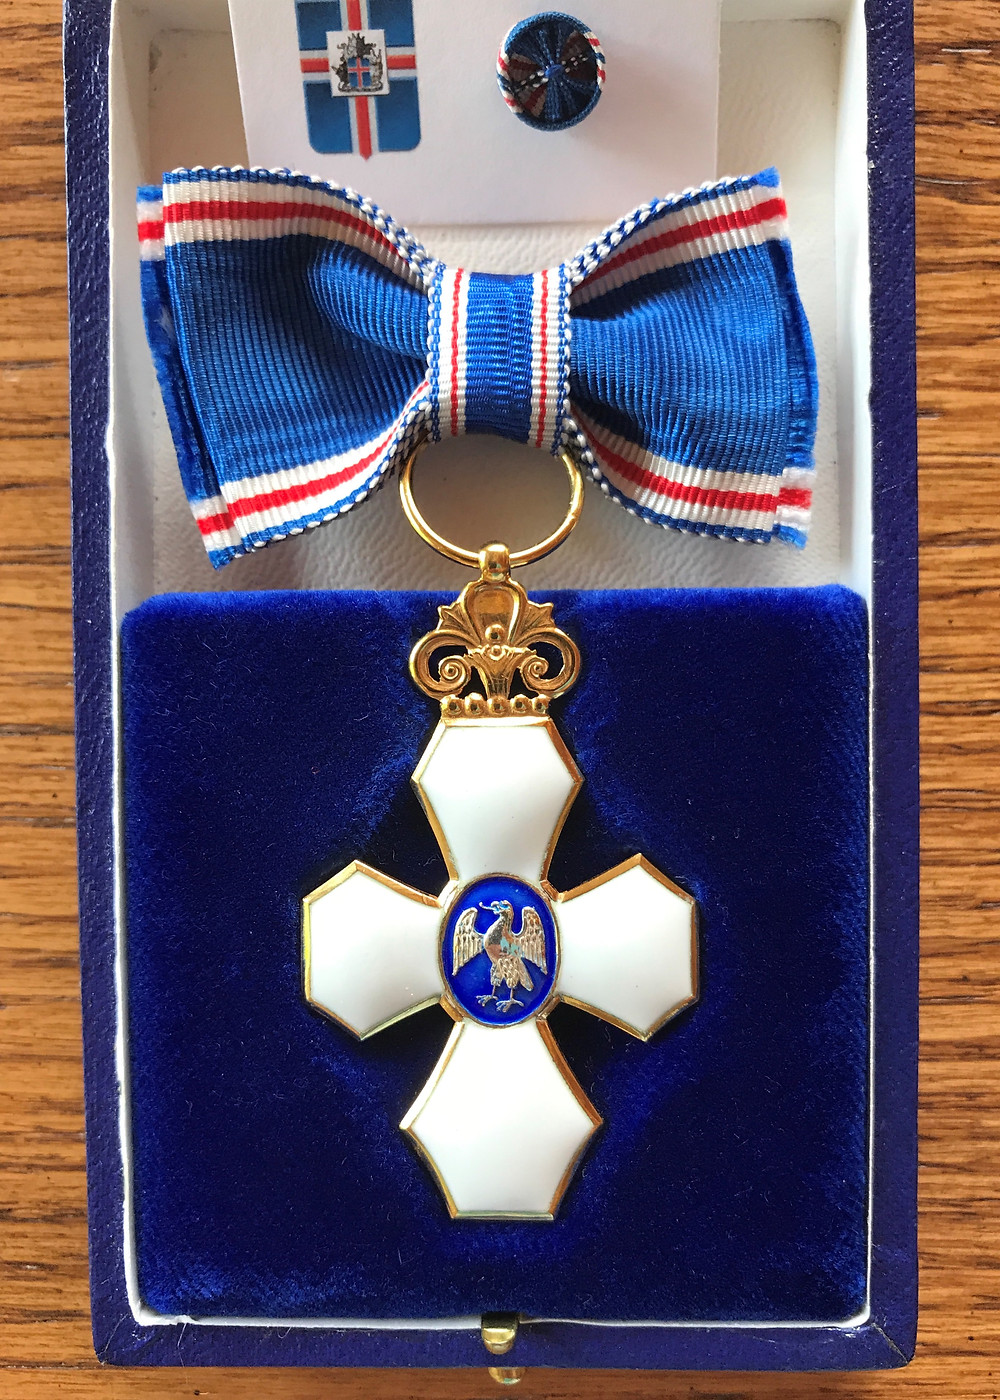 Icelandic Order of the Falcon